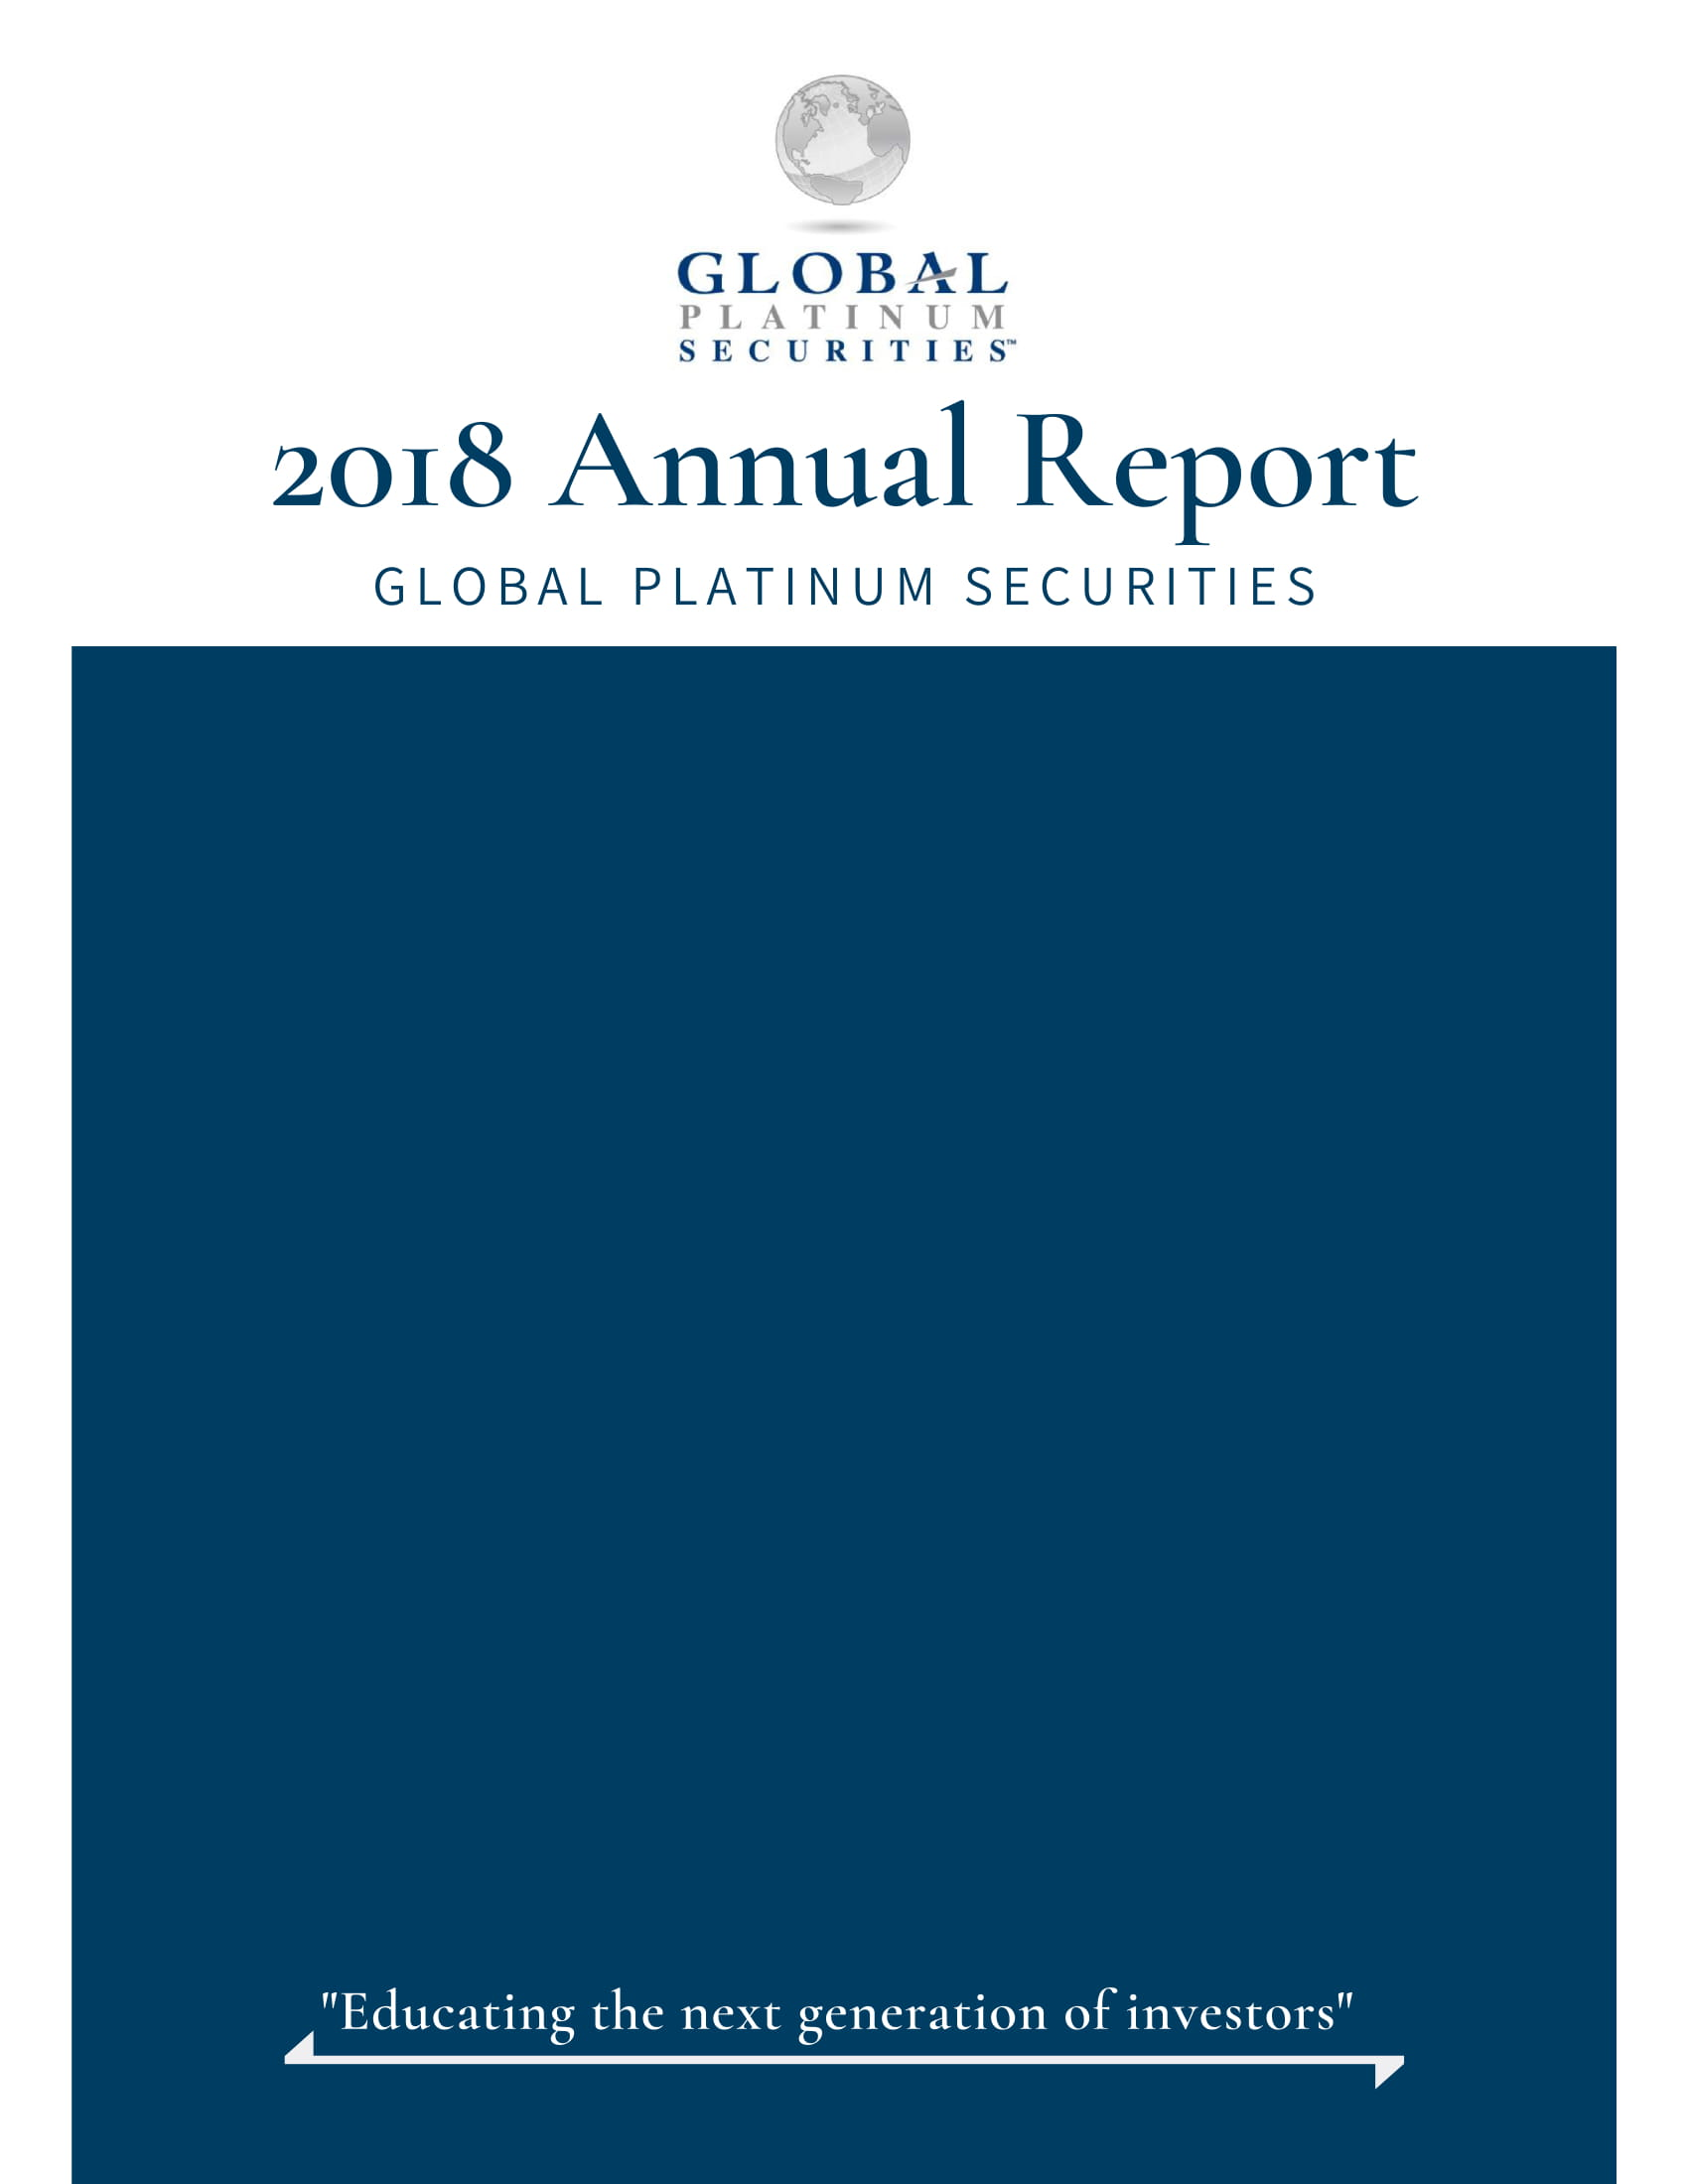 GPS 2019 Annual Report-1.jpg